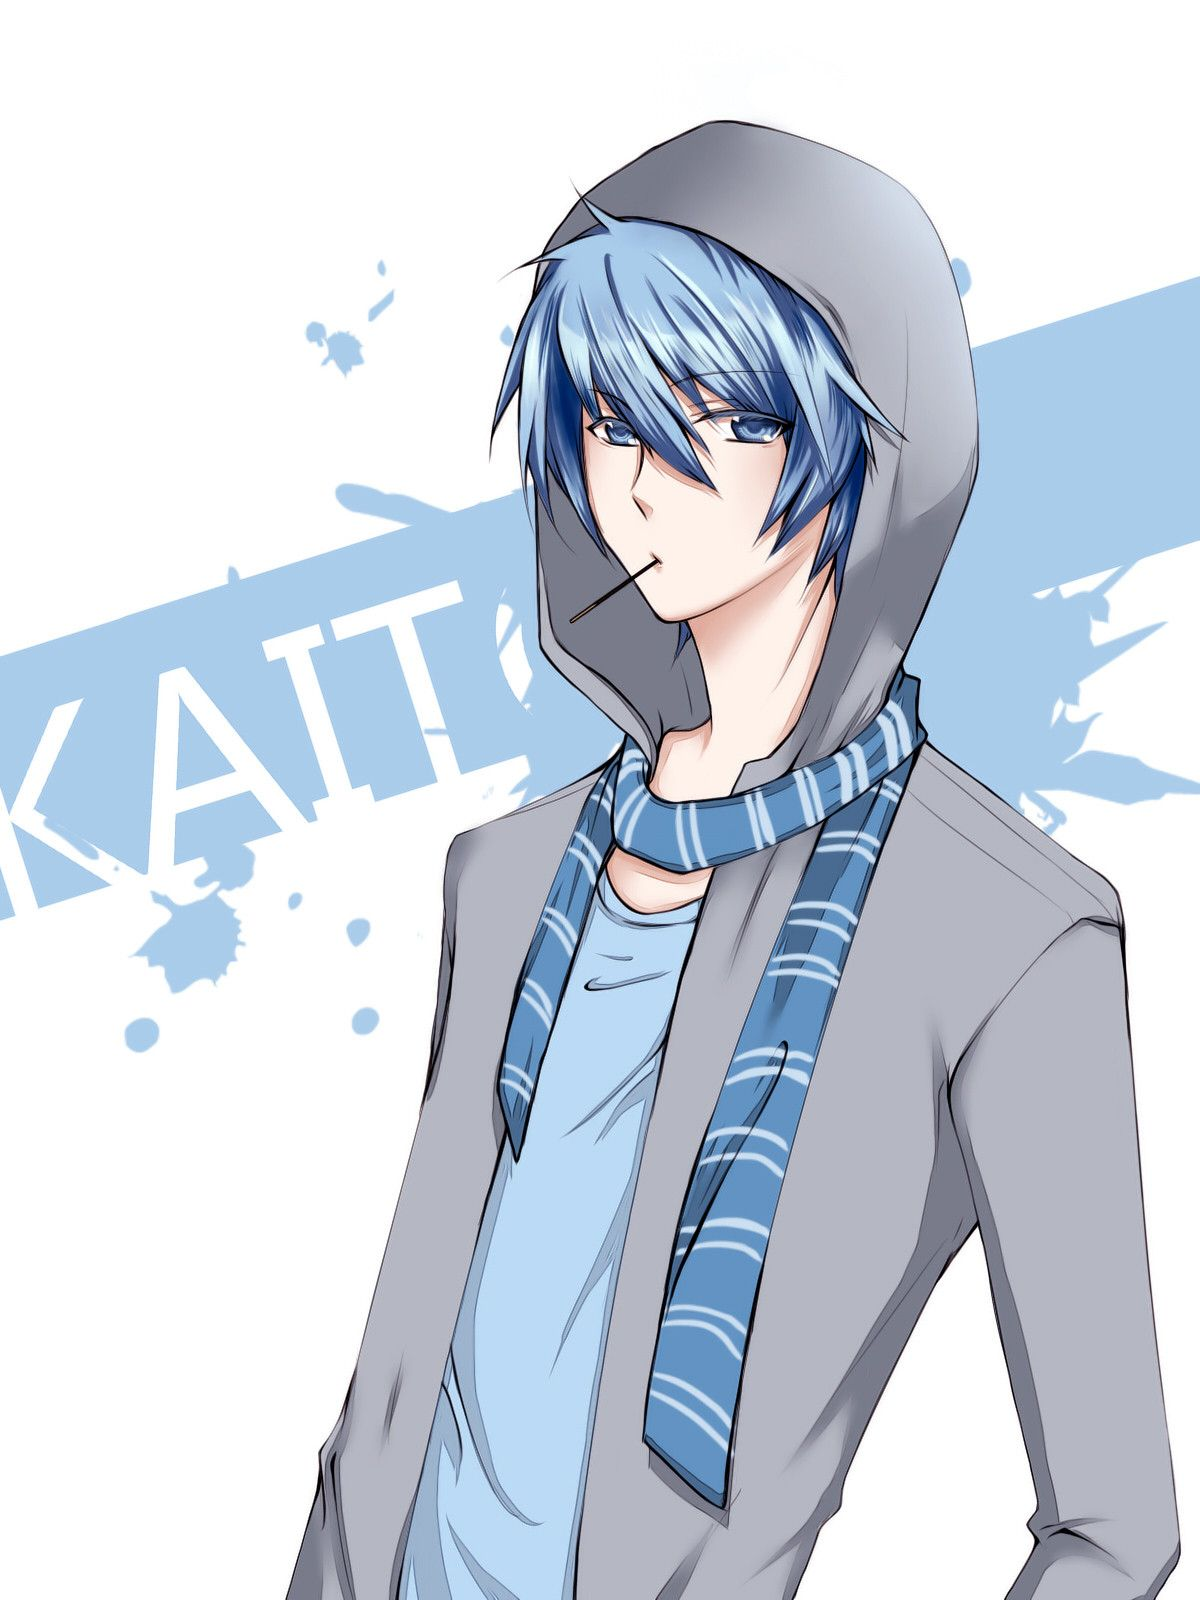 Anime boy standing alone widescreen 2 hd wallpapers epic